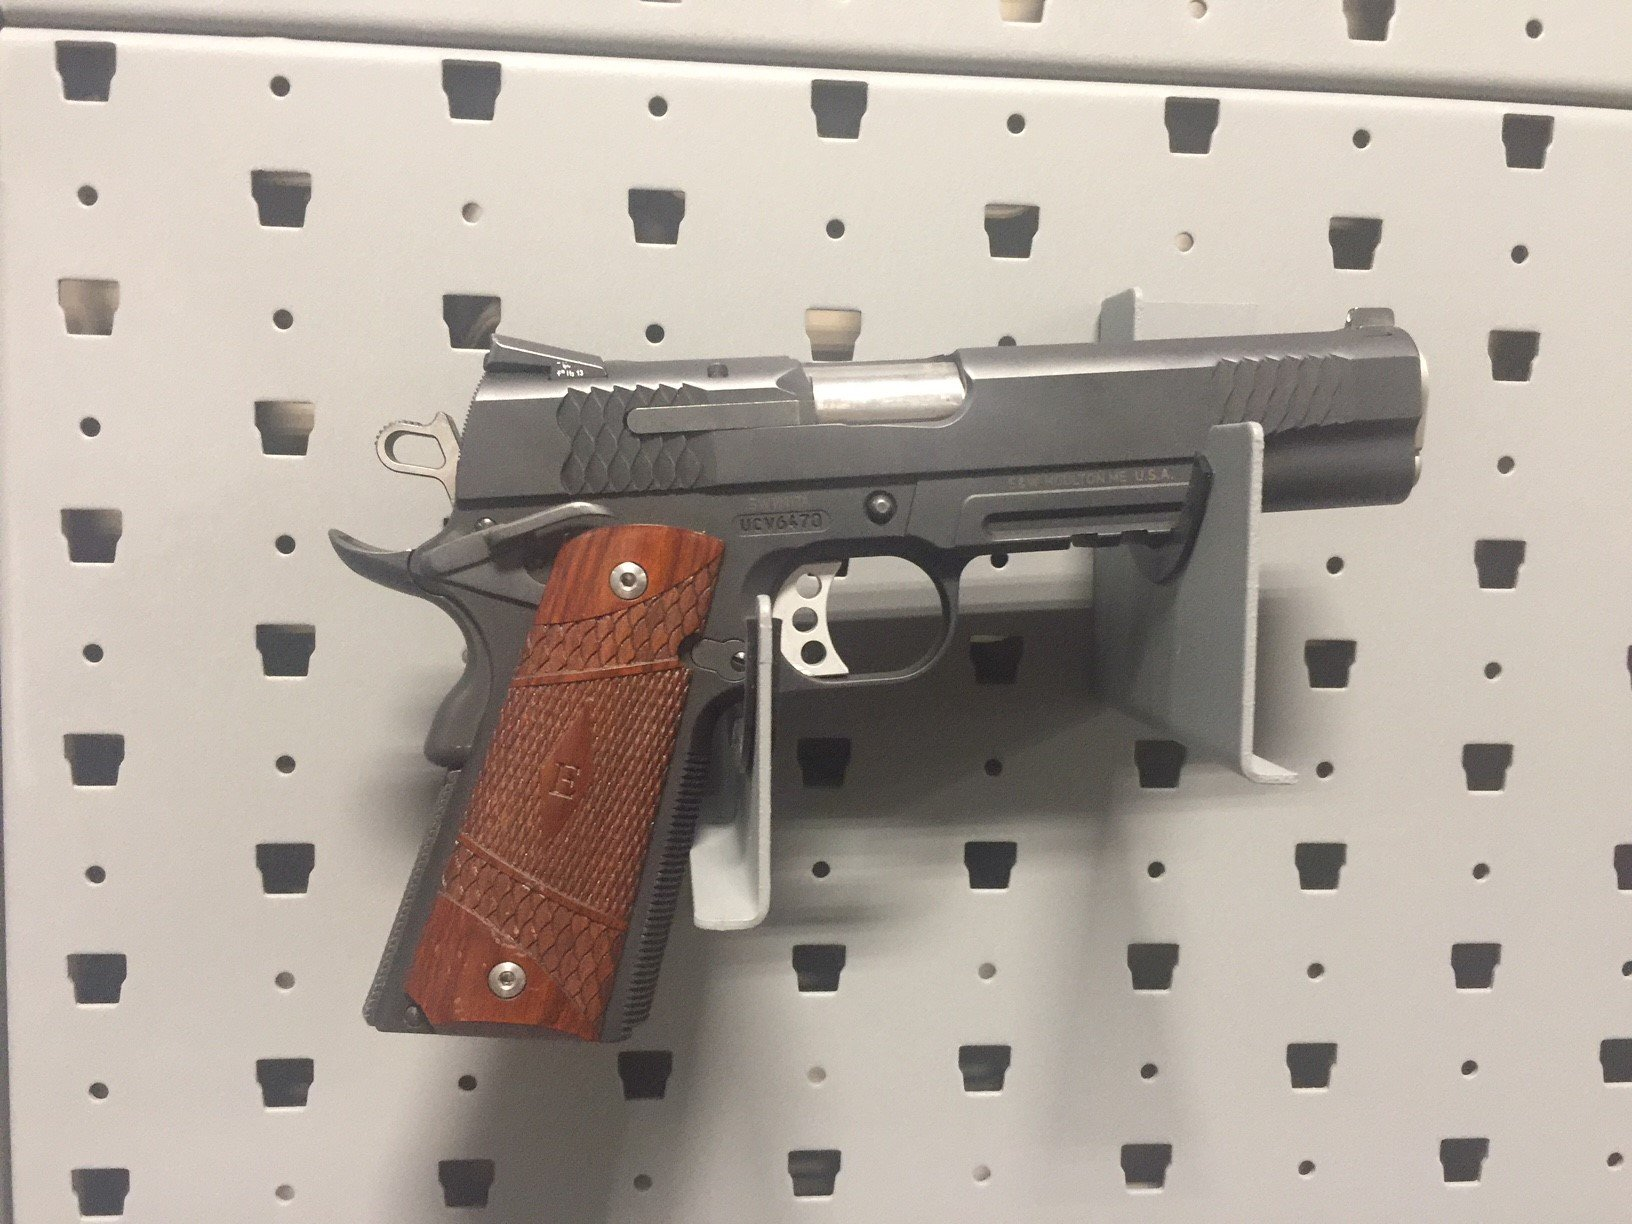 Smith & Wesson 1911 - 45 ACP $7